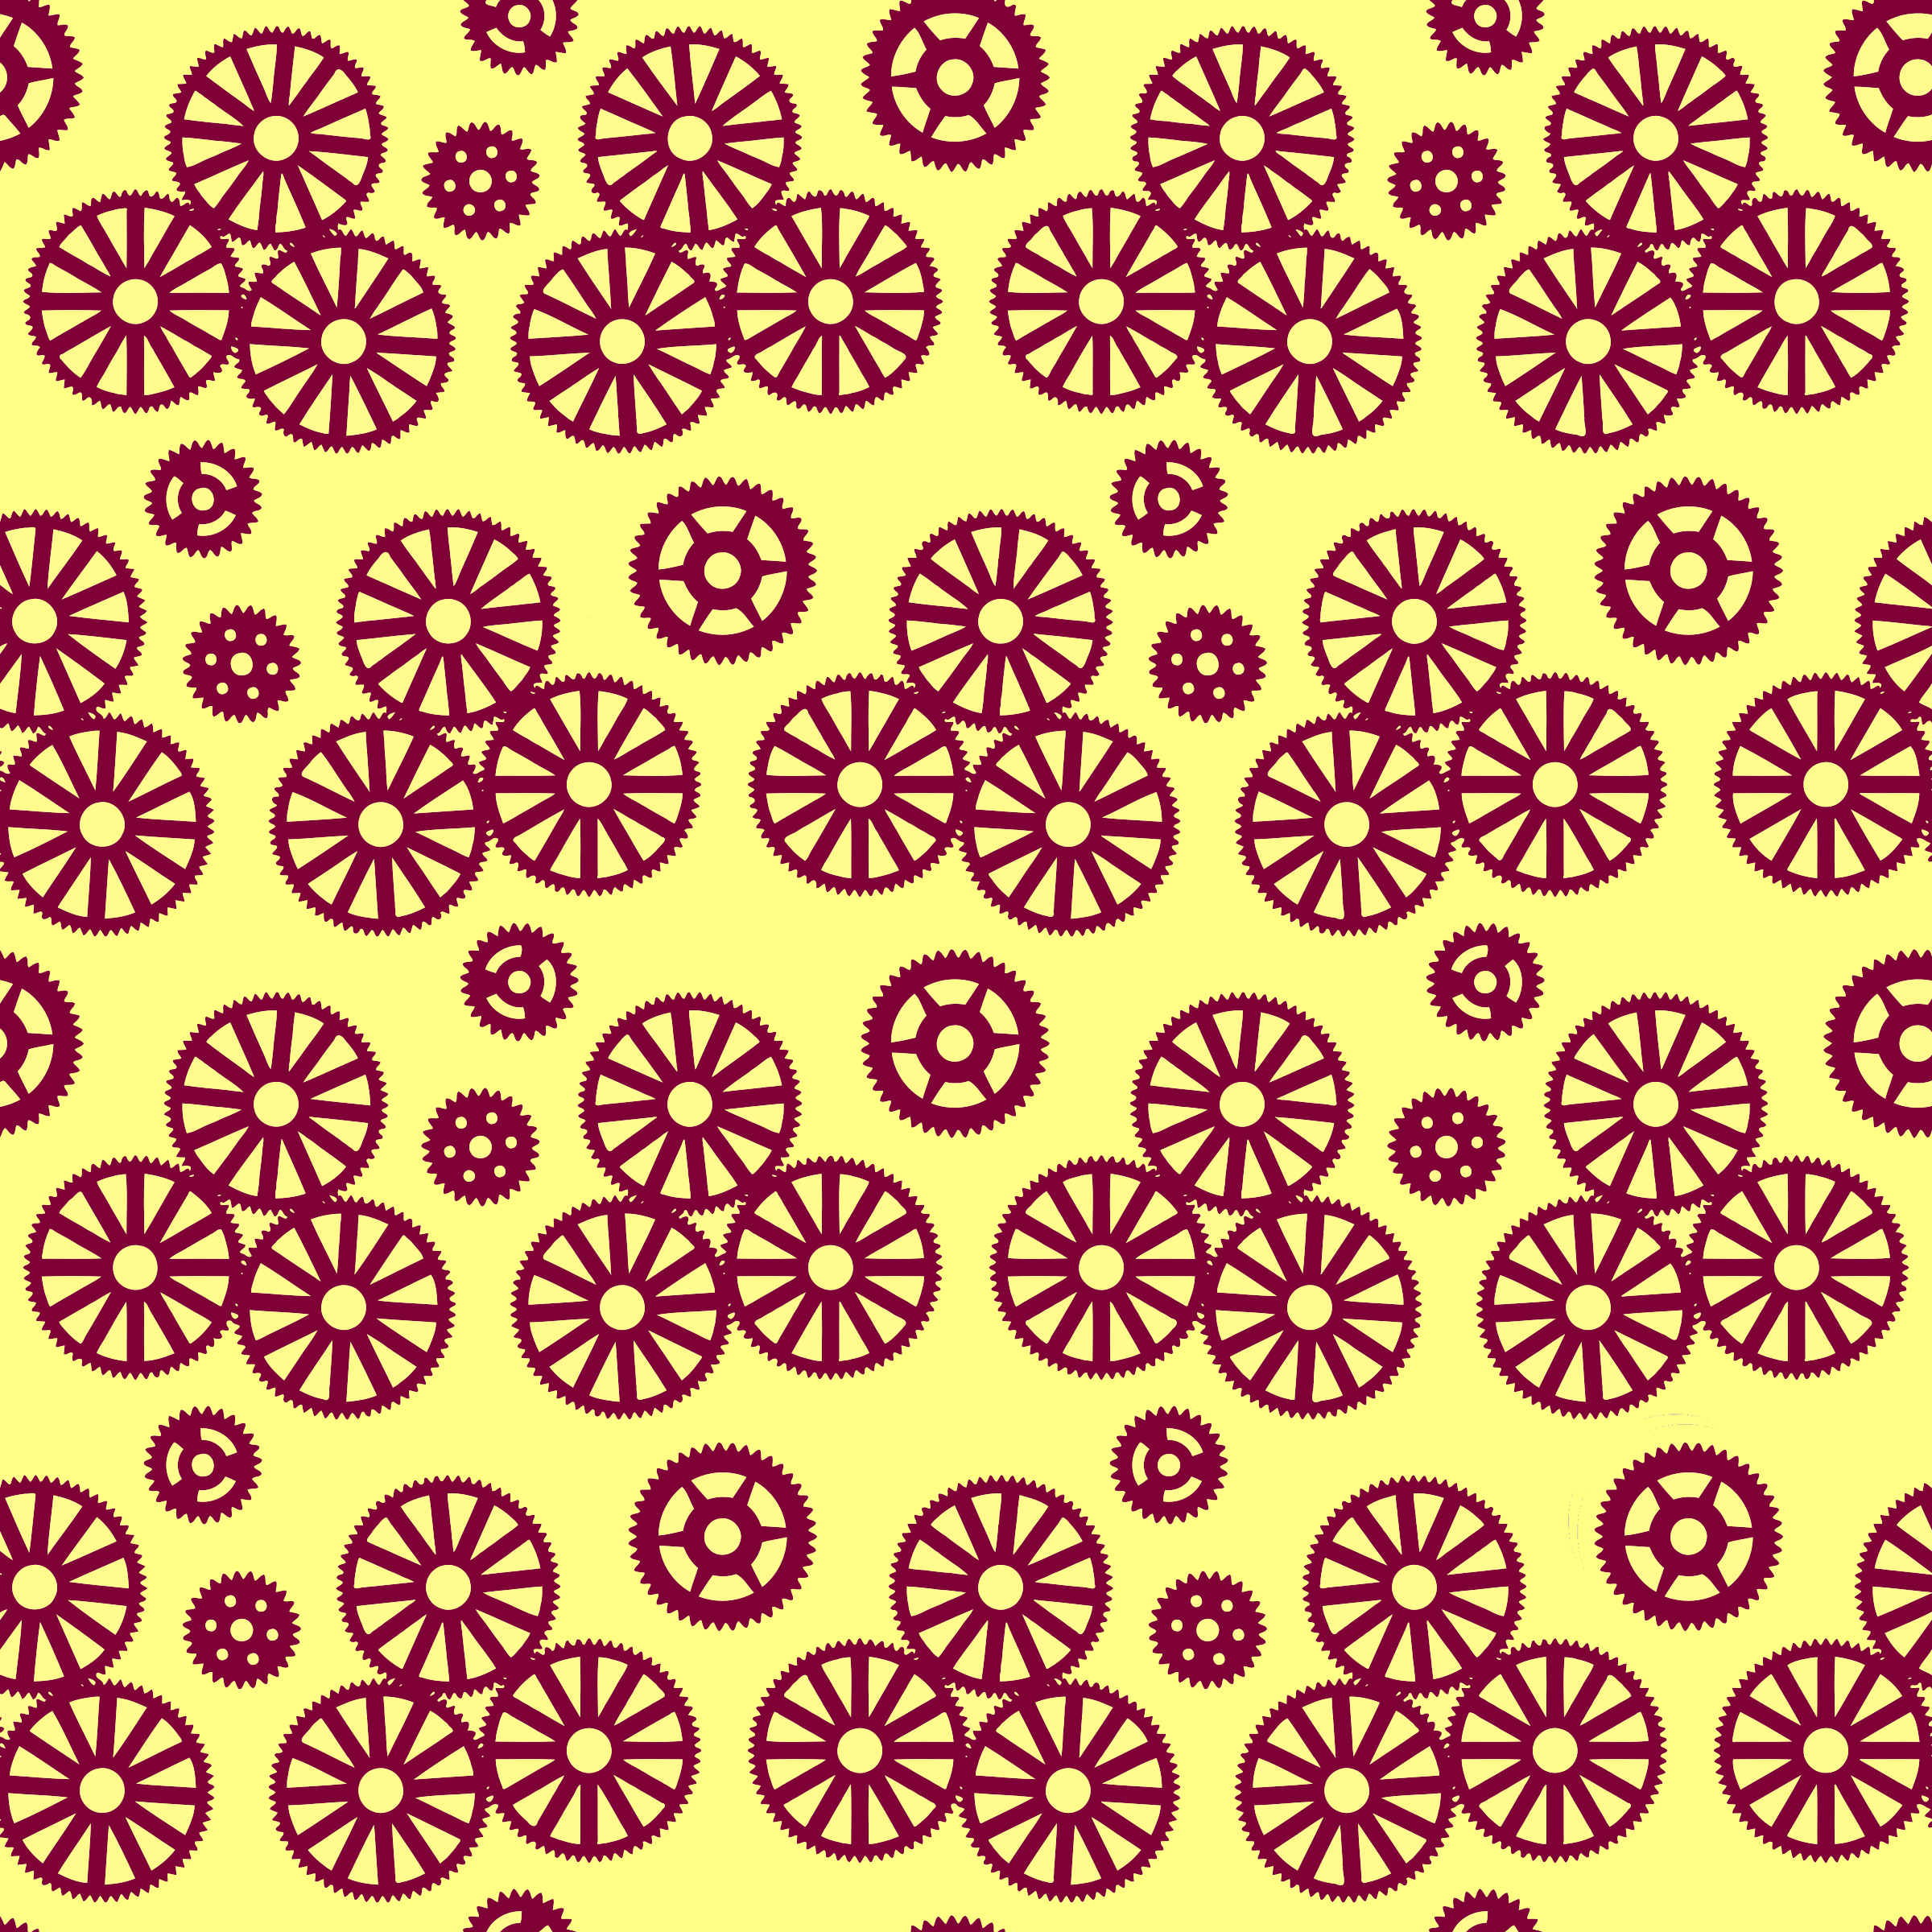 Gears pattern 3 by Firkin